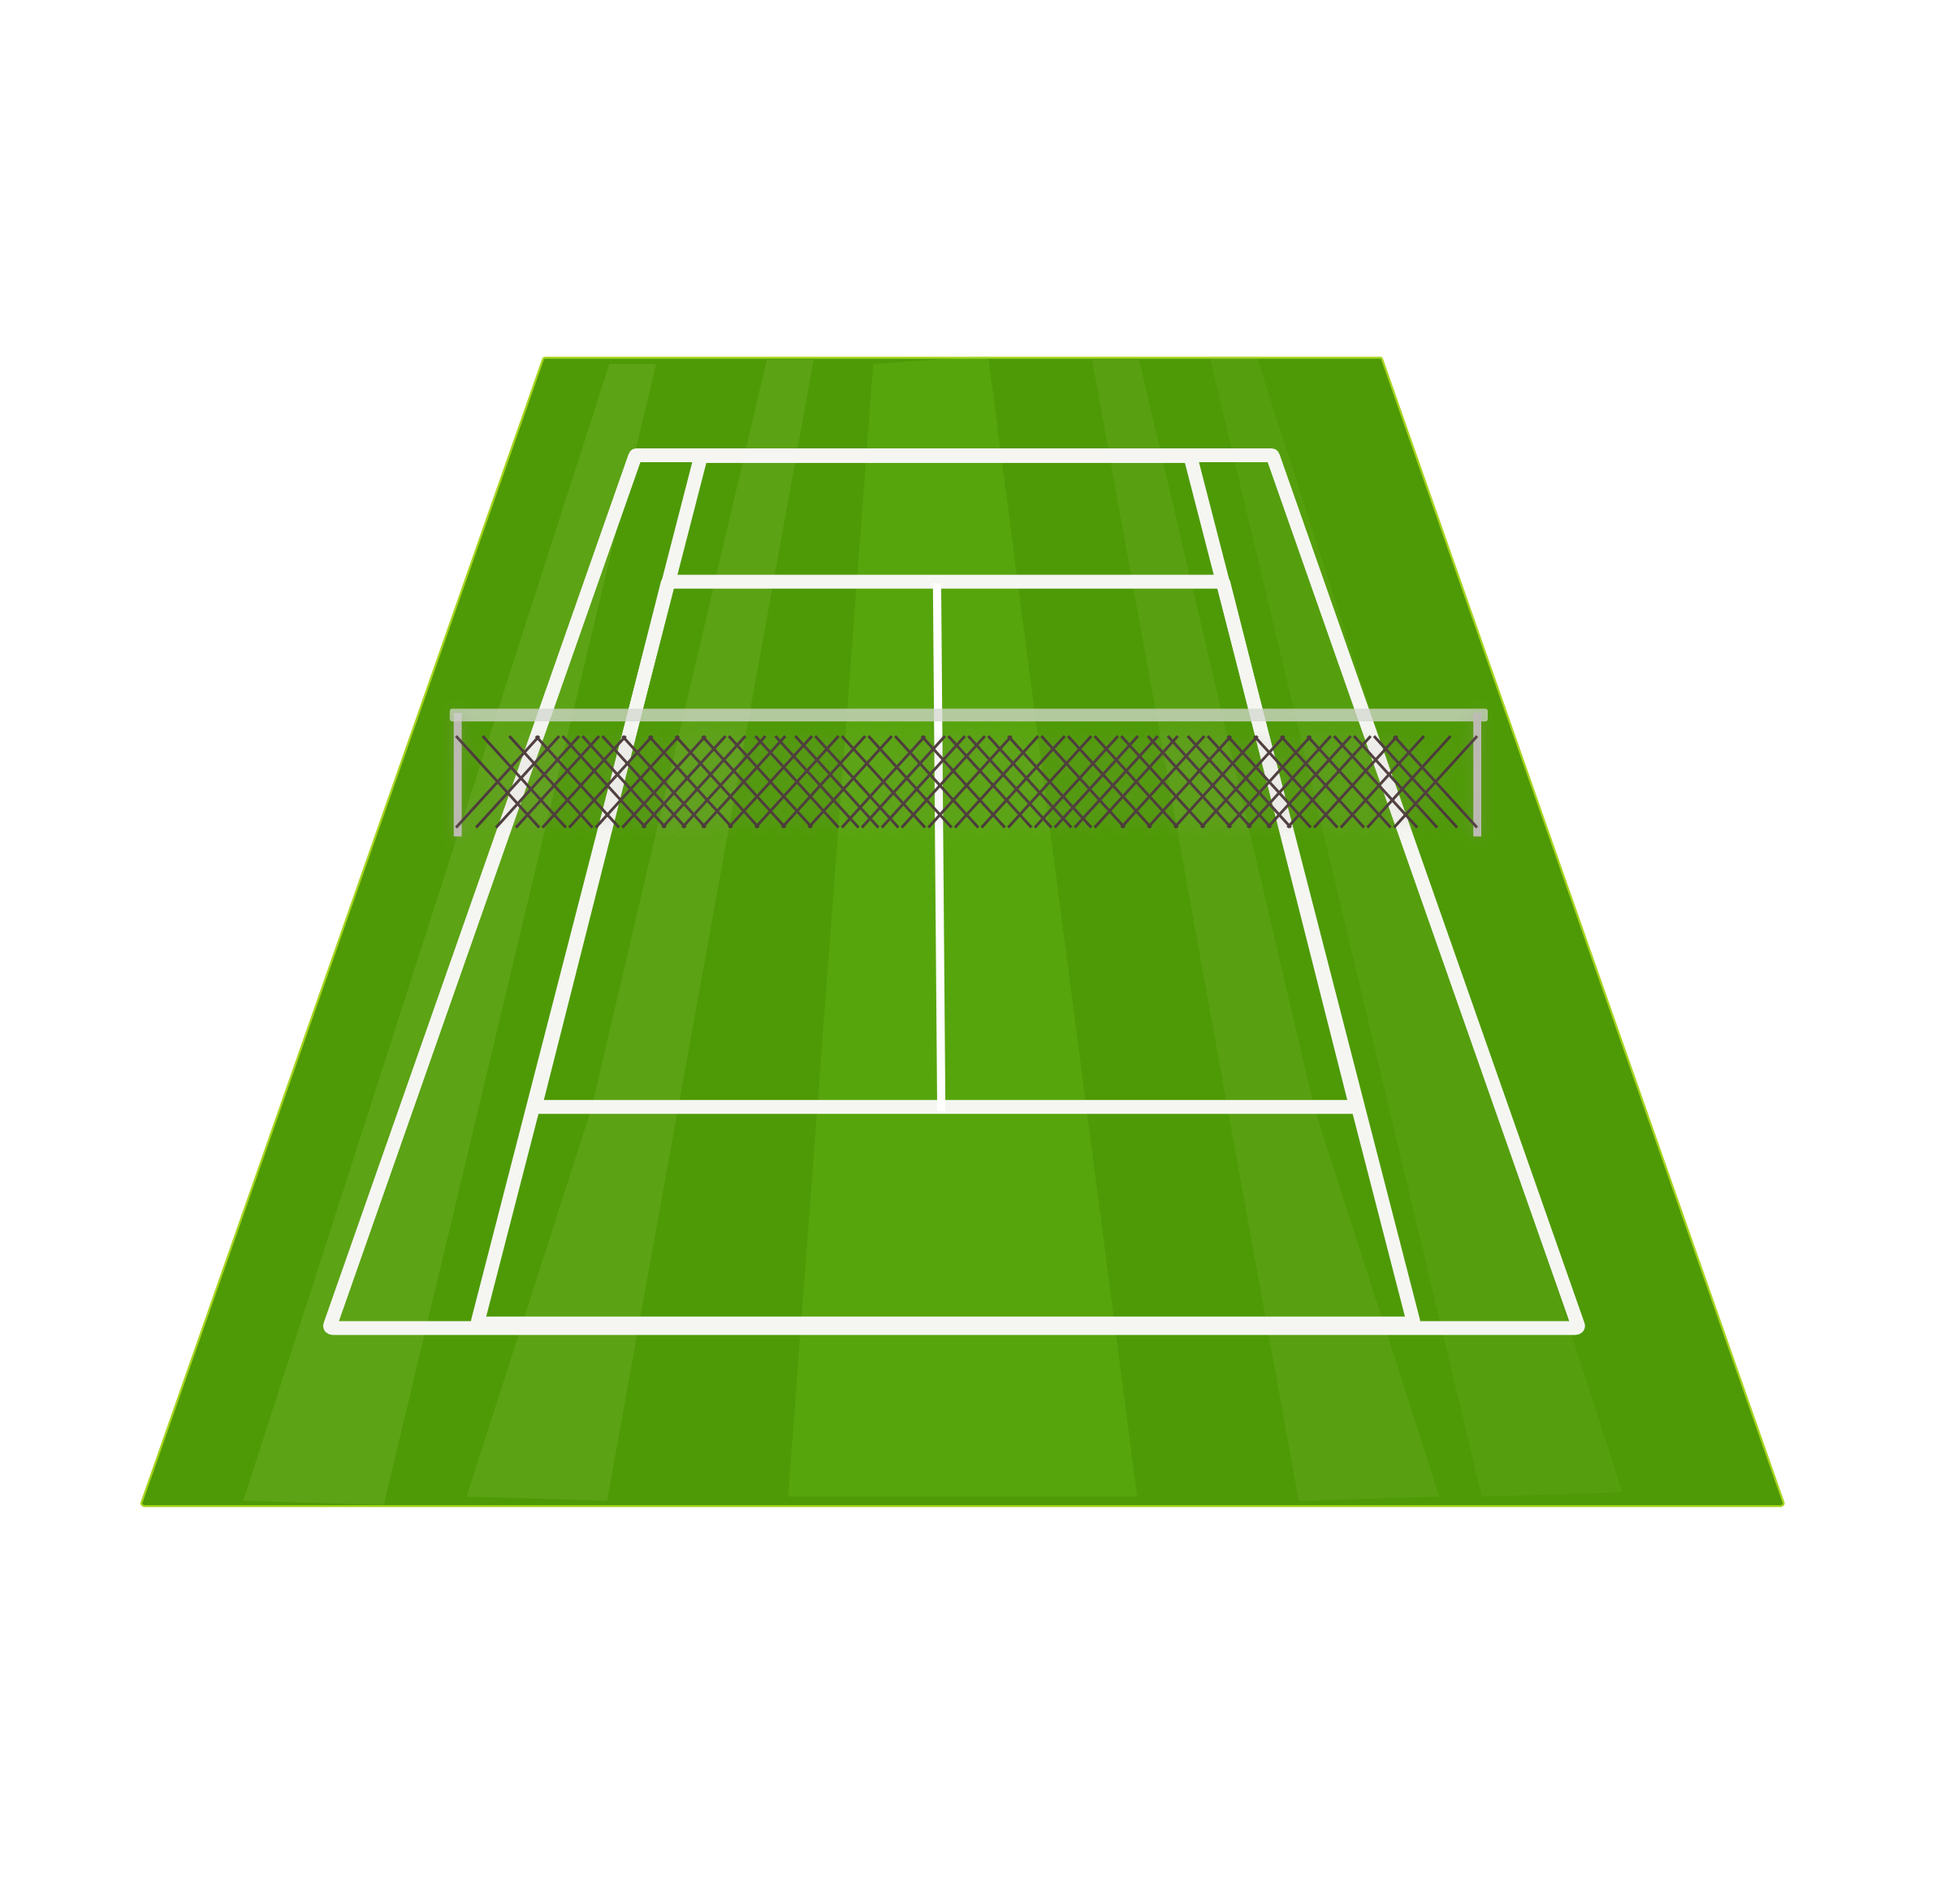 Tennis court illustrations and clipart   Can Stock Photo